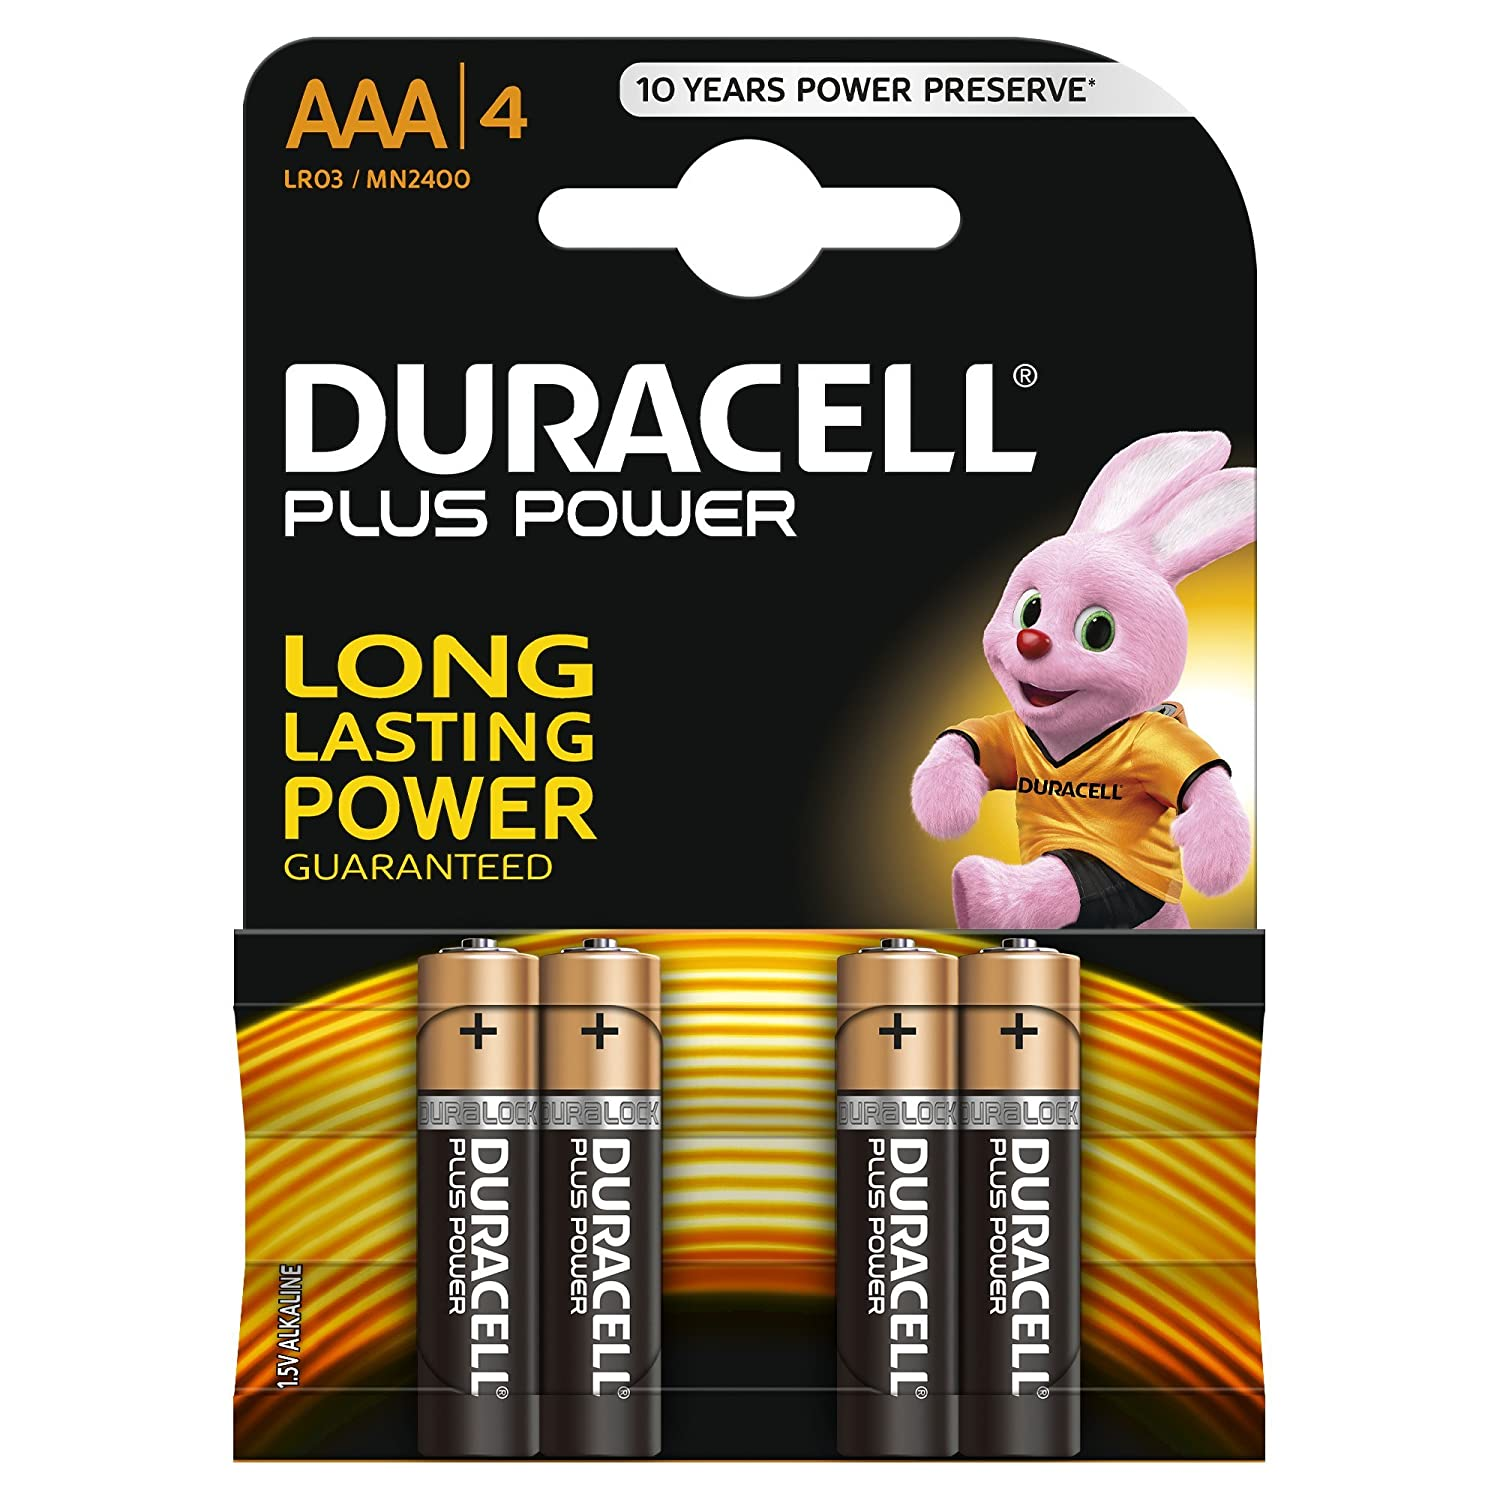 Duracell AAA MN2400 Plus Power Long Lasting Alkaline Batteries LR03 MINI STILO